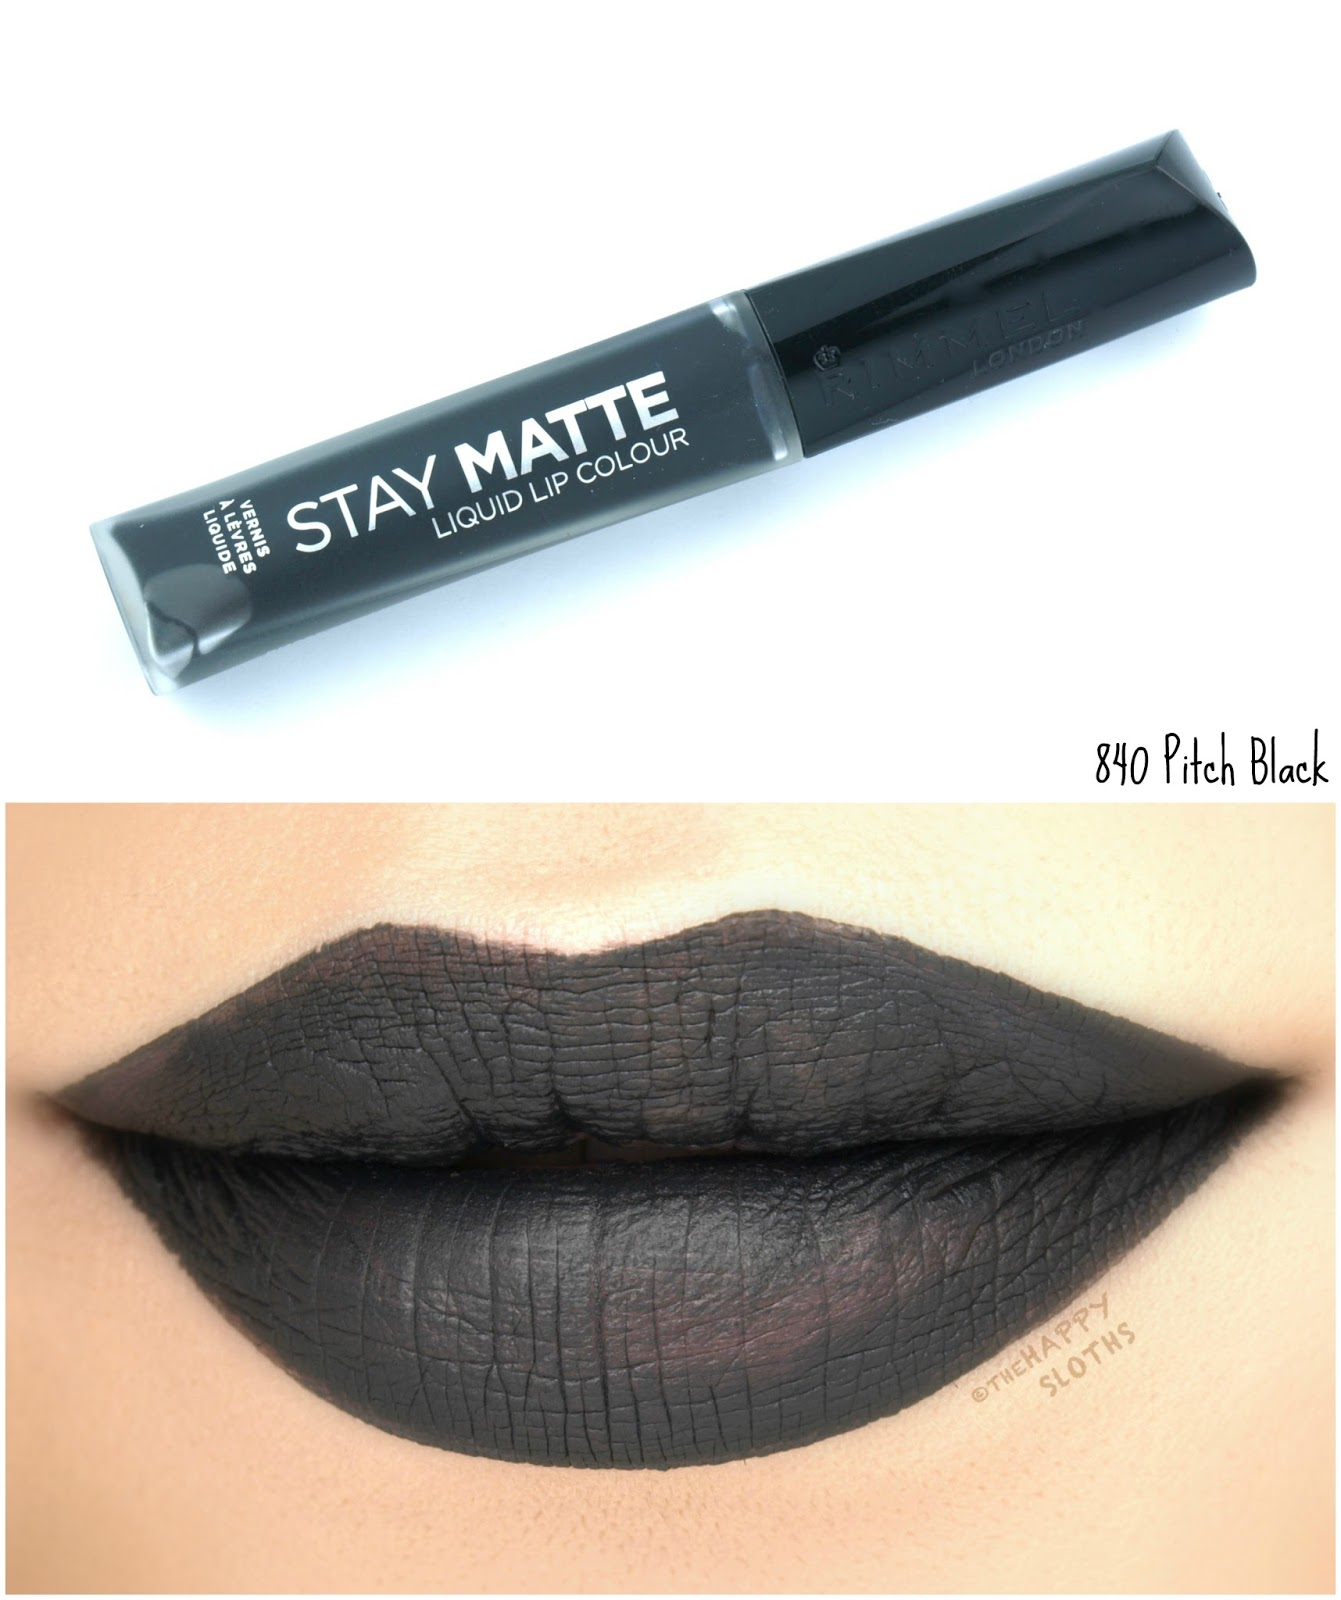 Rimmel London Stay Matte Liquid Lip Colour | 840 Pitch Black: Review and Swatches